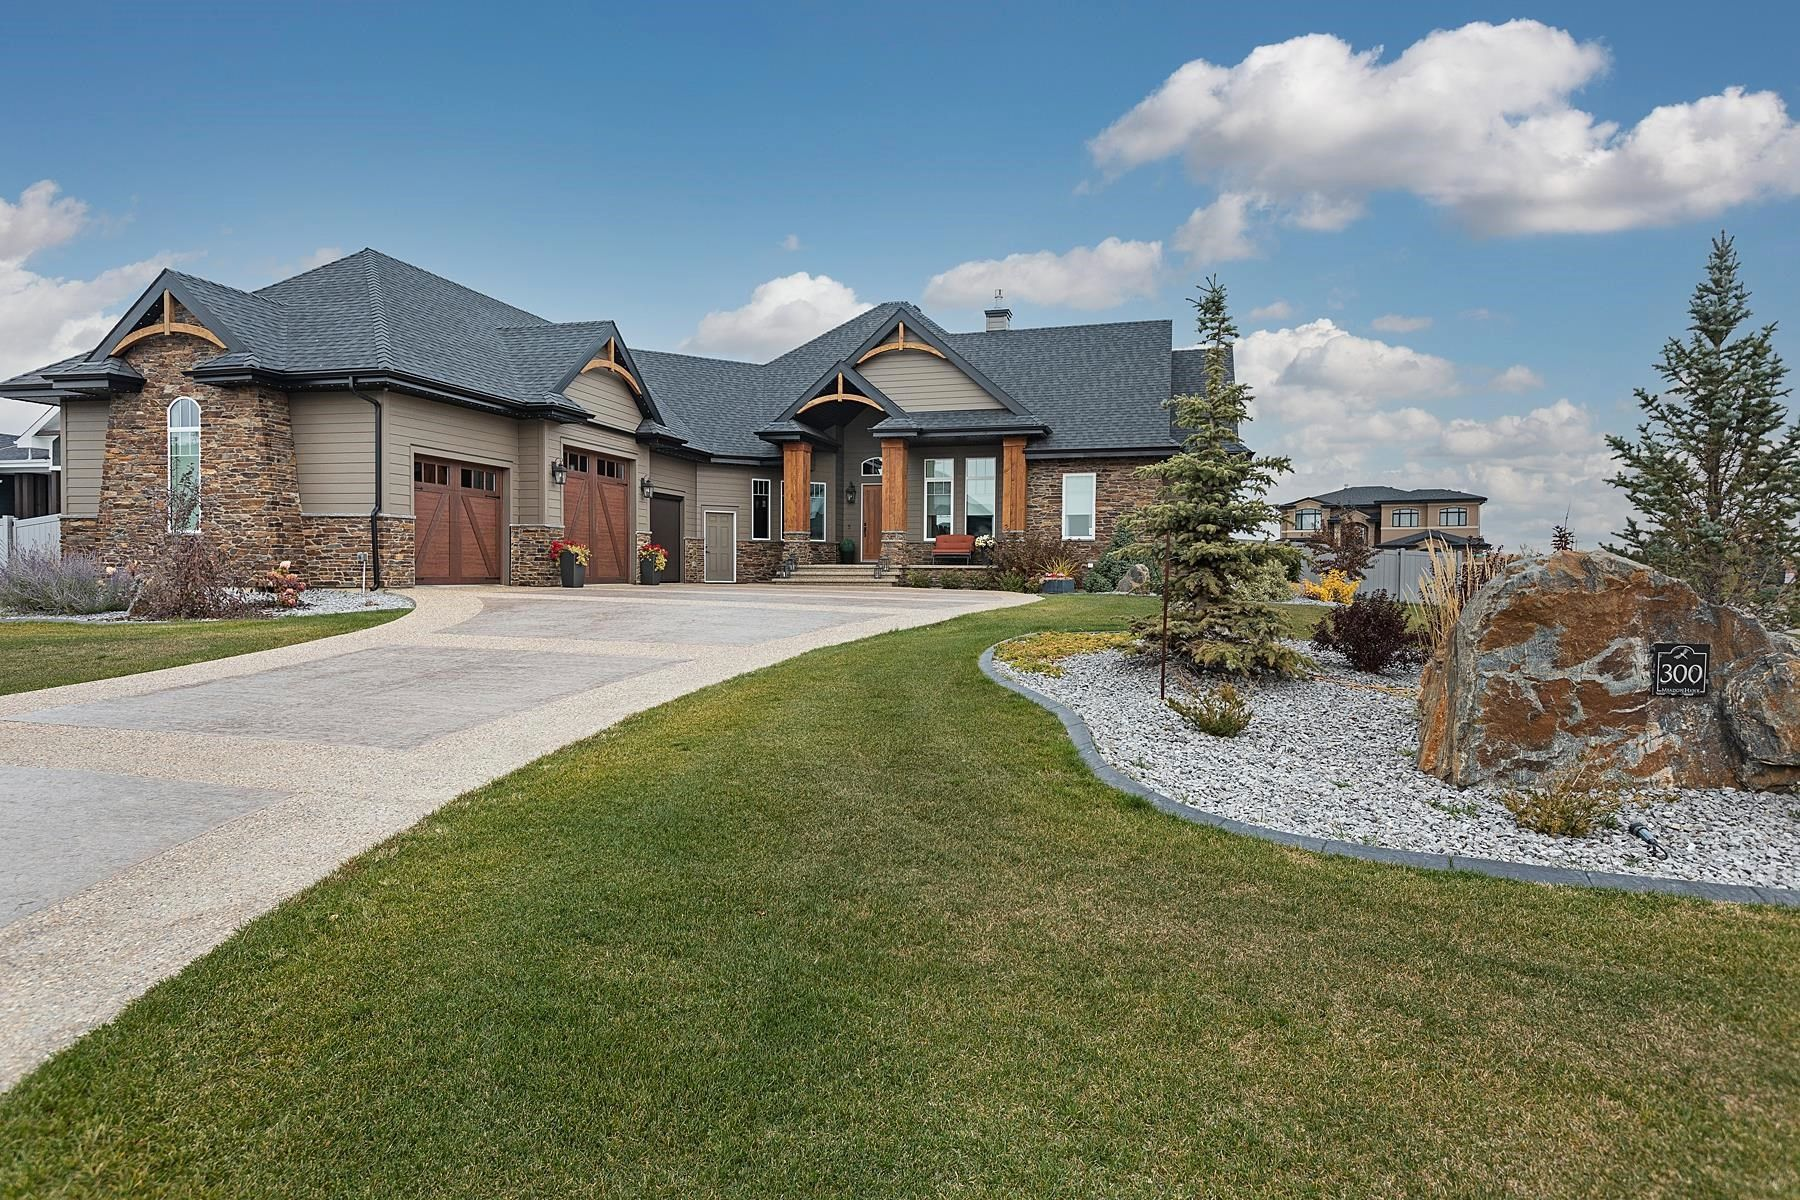 Main Photo: 300 52320 RGE RD 231: Rural Strathcona County House for sale : MLS®# E4265834